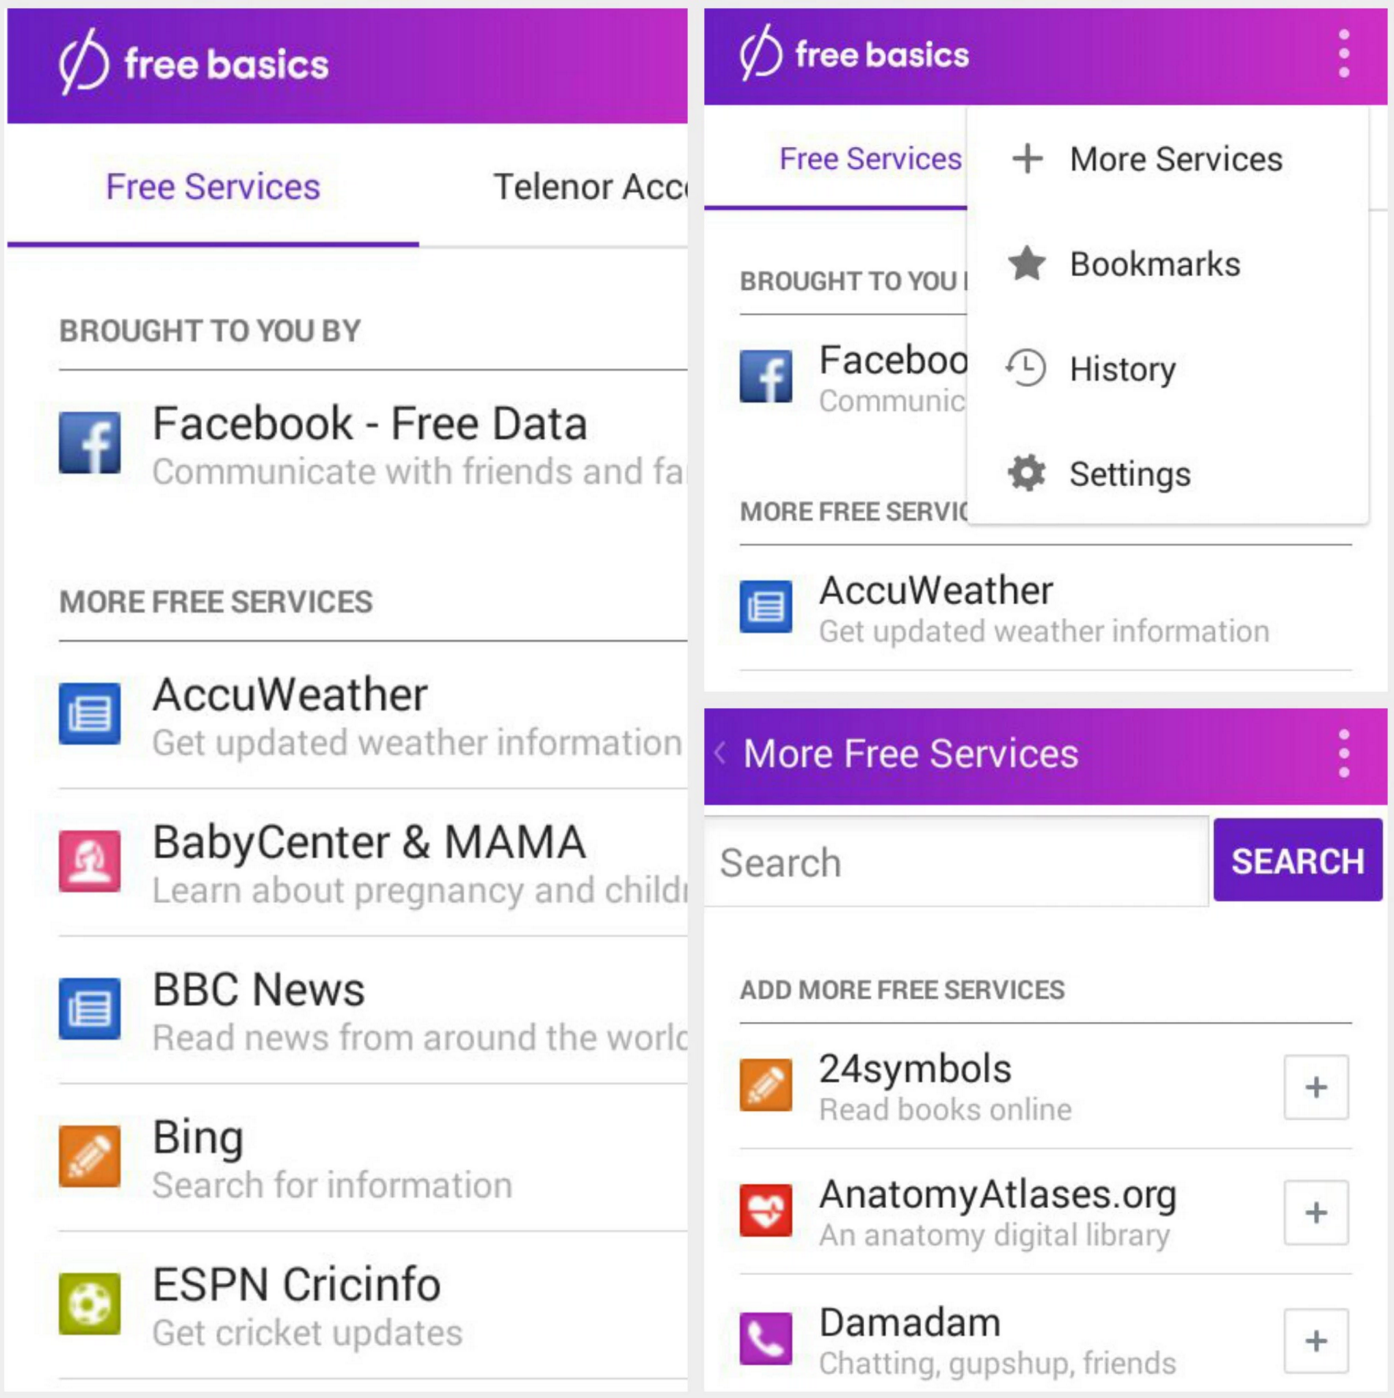 Facebook prominence in Free Basics